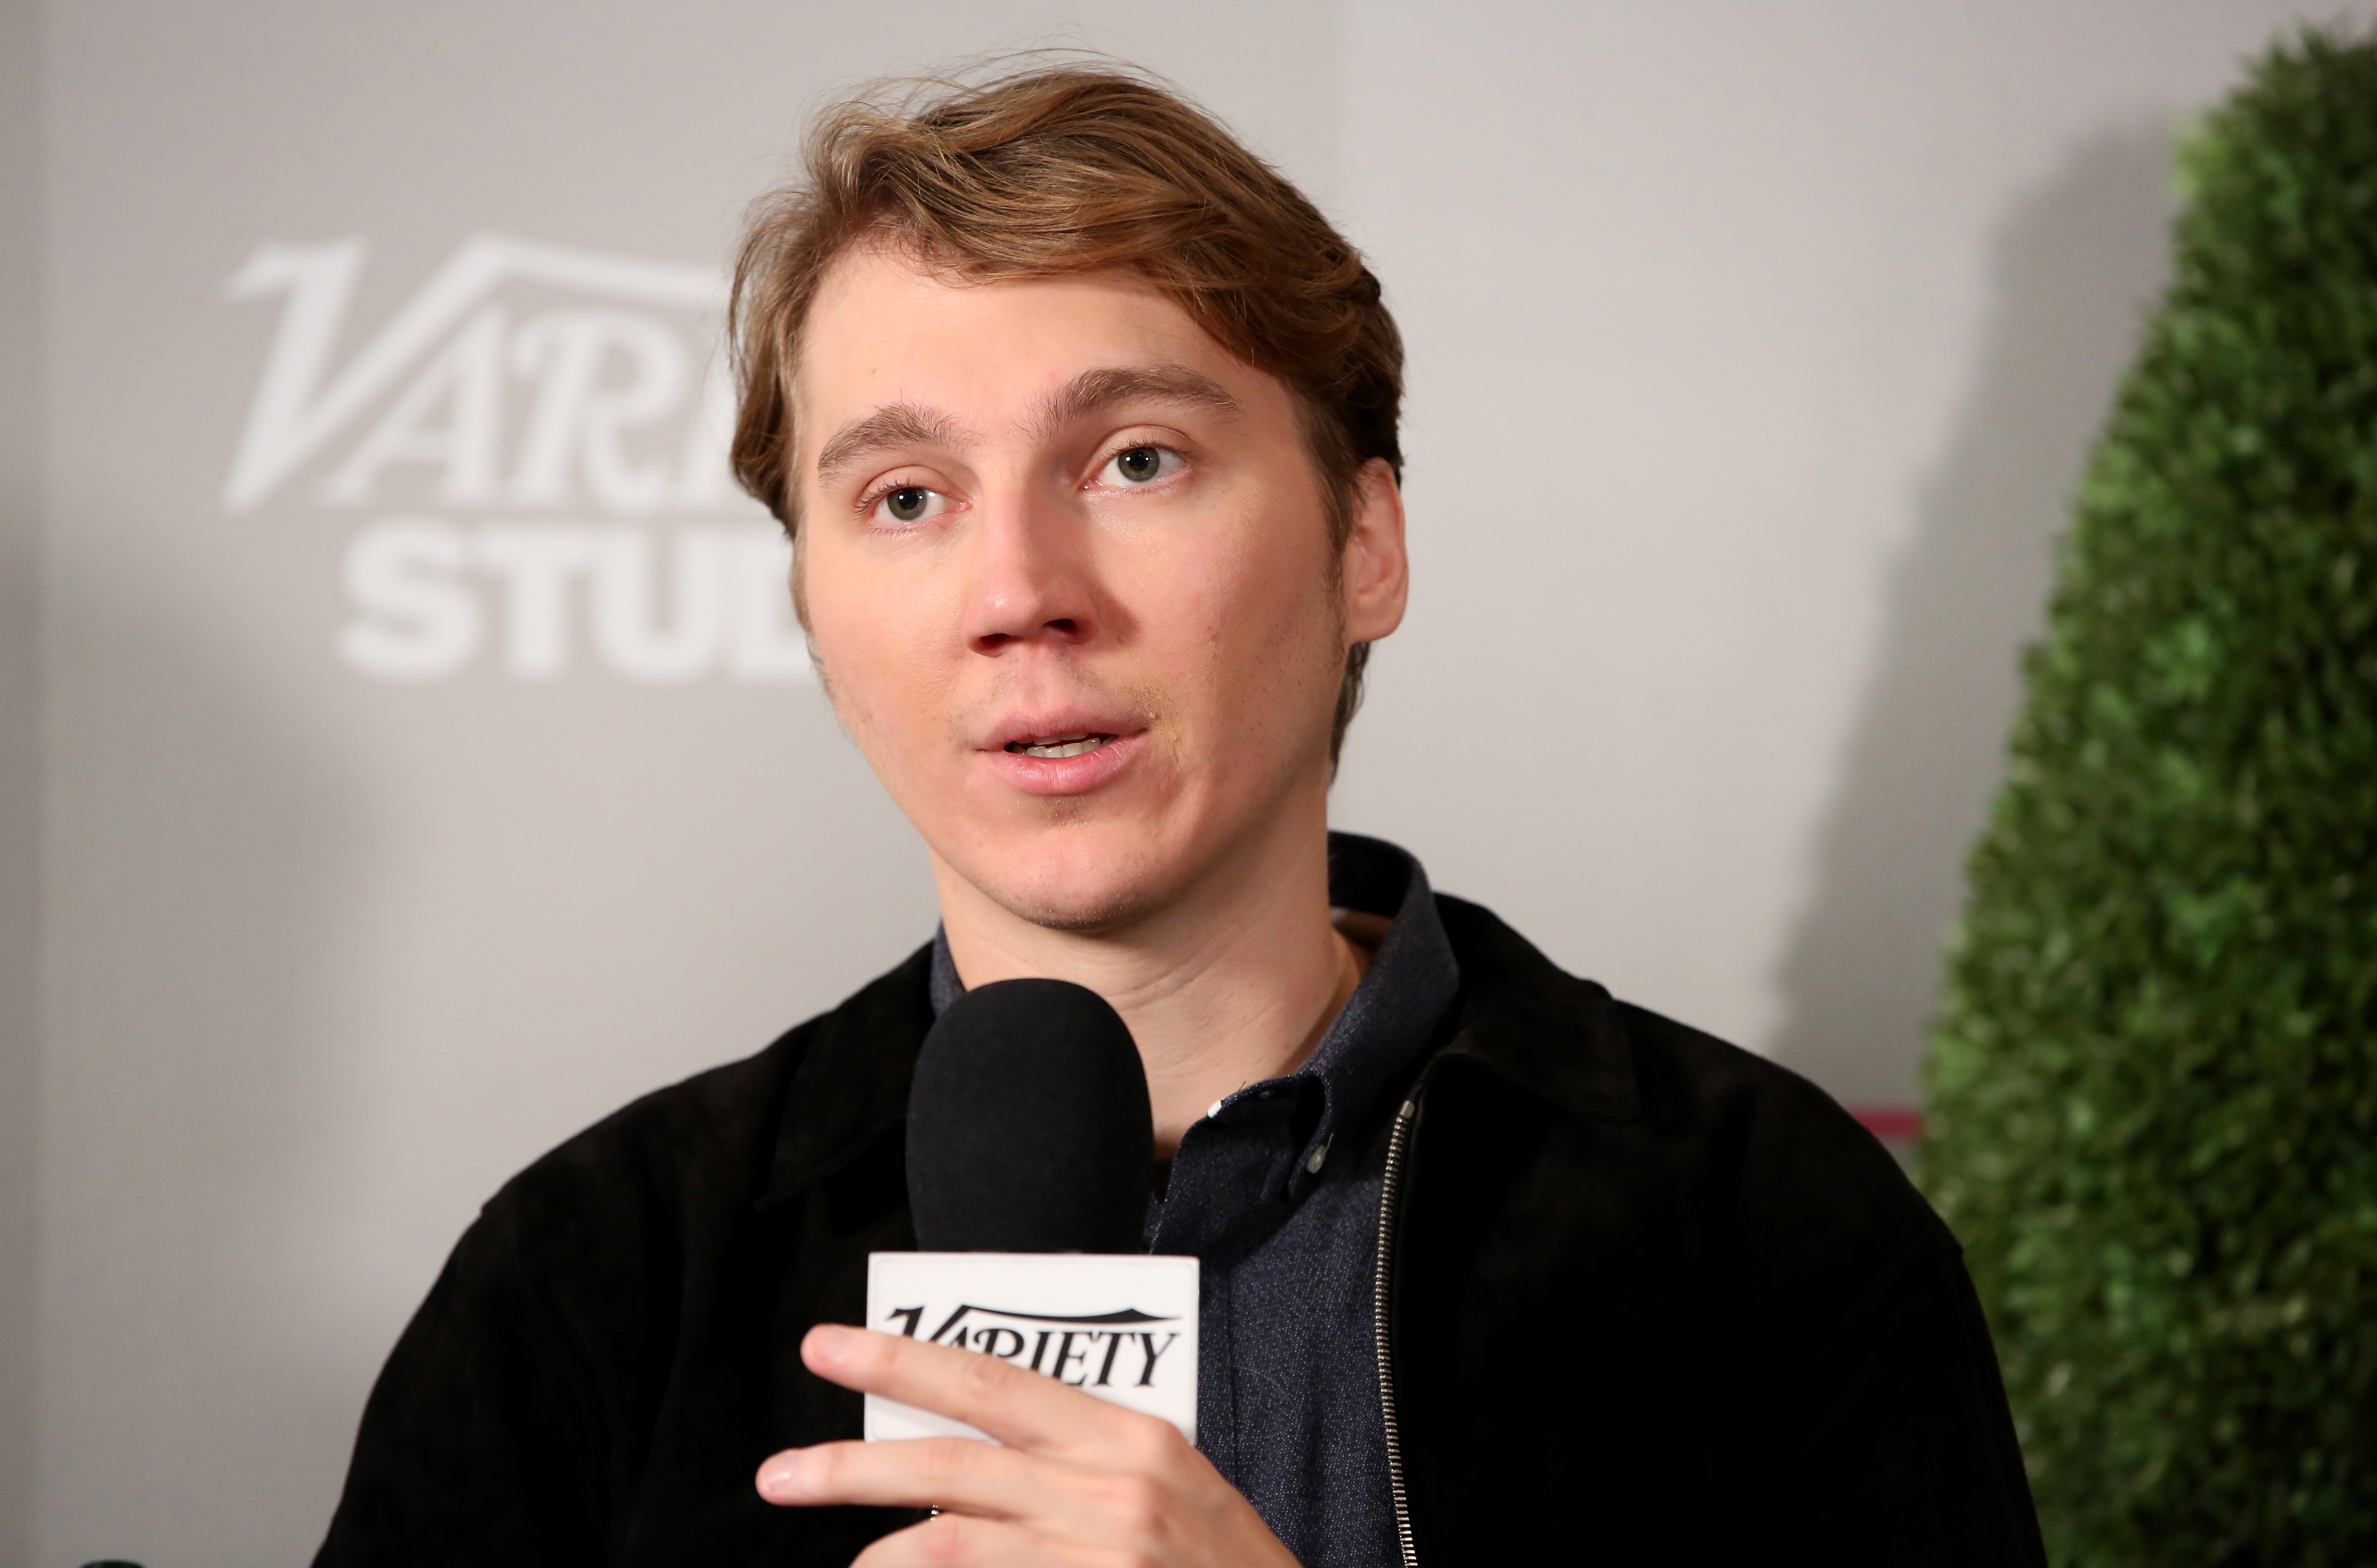 TORONTO, ON - SEPTEMBER 08:  Actor Paul Dano attends the Variety Studio presented by Moroccanoil at Holt Renfrew during the 2014 Toronto International Film Festival on September 8, 2014 in Toronto, Canada.  (Photo by Jonathan Leibson/Getty Images for Variety)